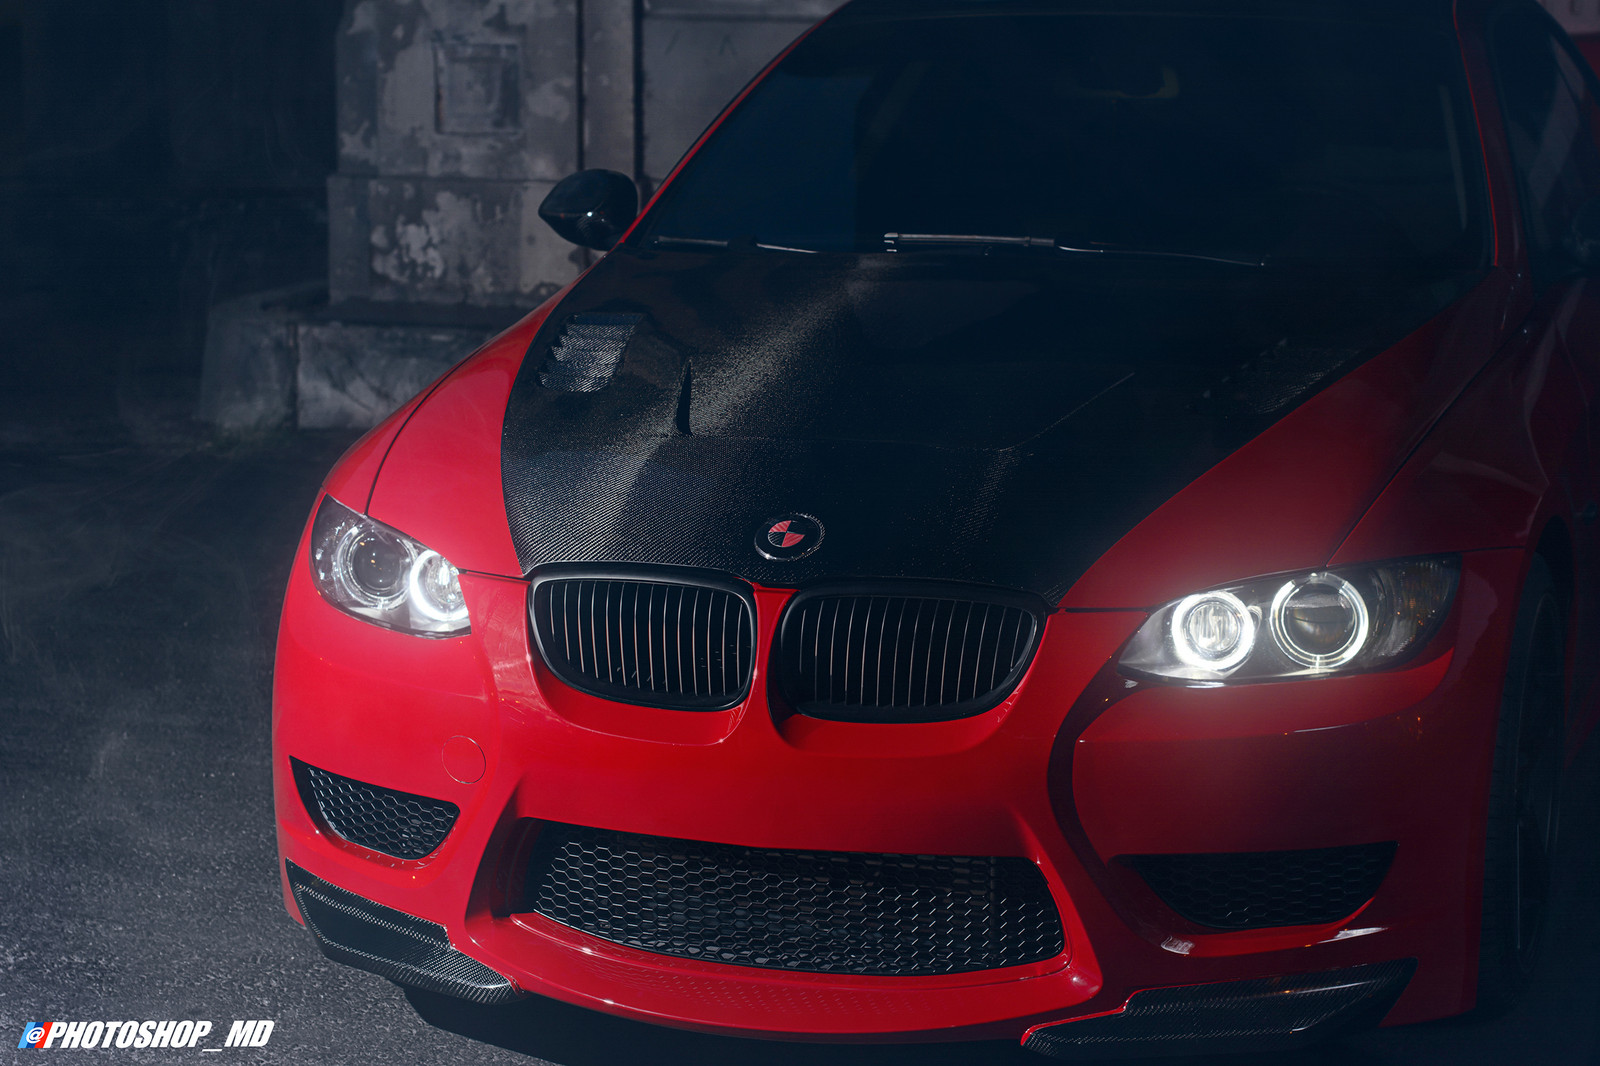 crimson red 2008 BMW 335i JB4 coupe